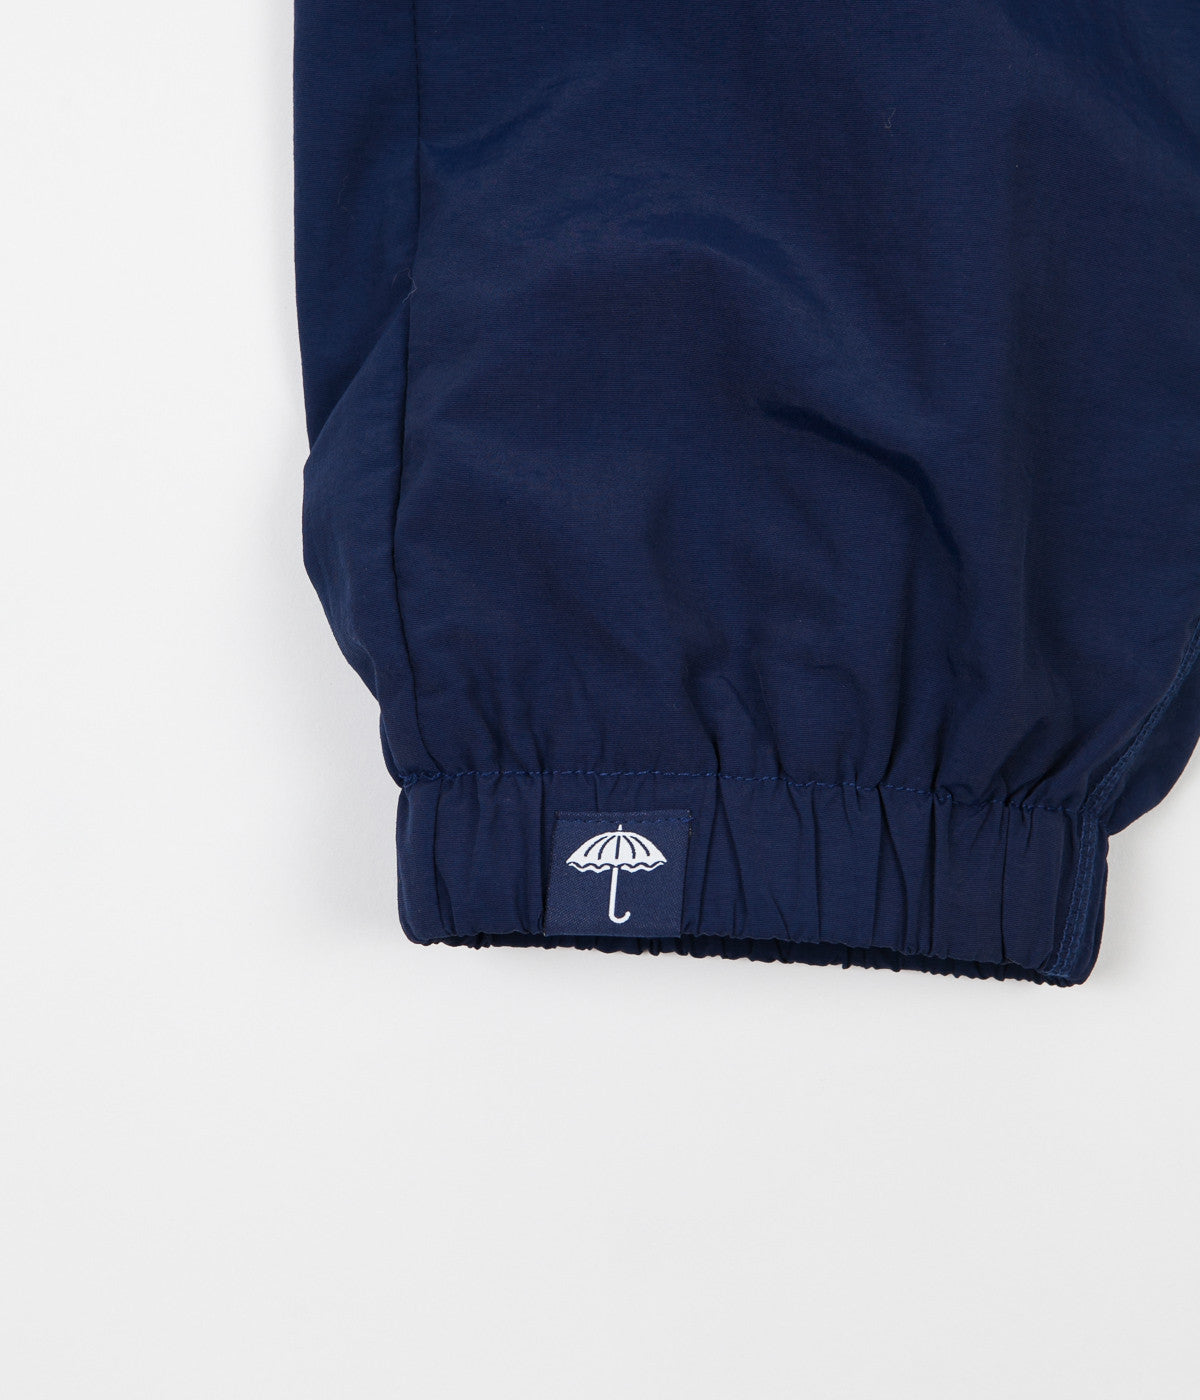 Helas Hall Tracksuit Sweatpants - Navy